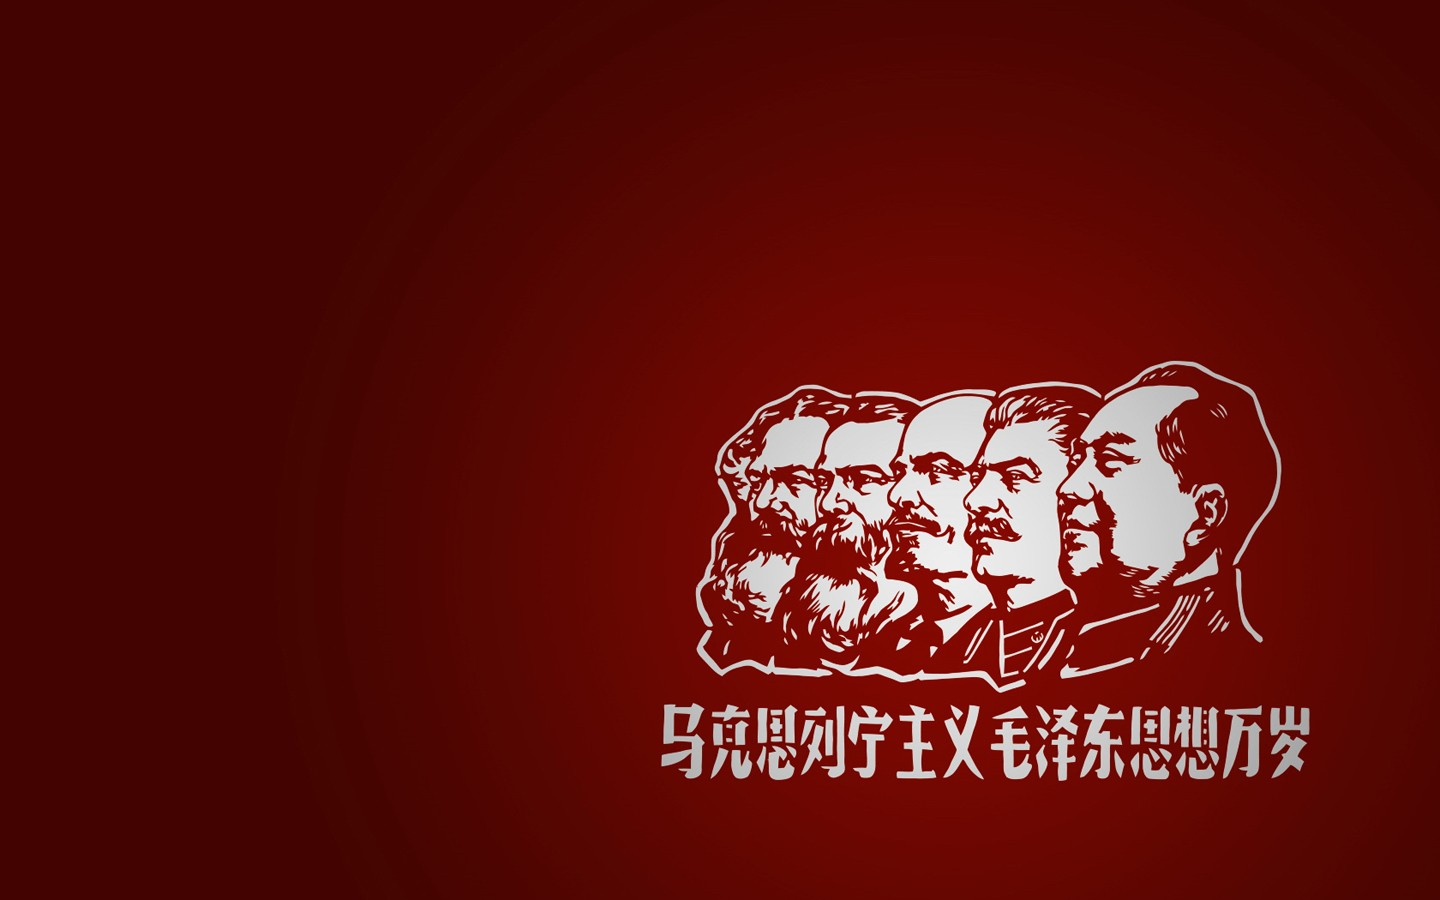 founding fathers of communism simple background beards crime men dictators red background